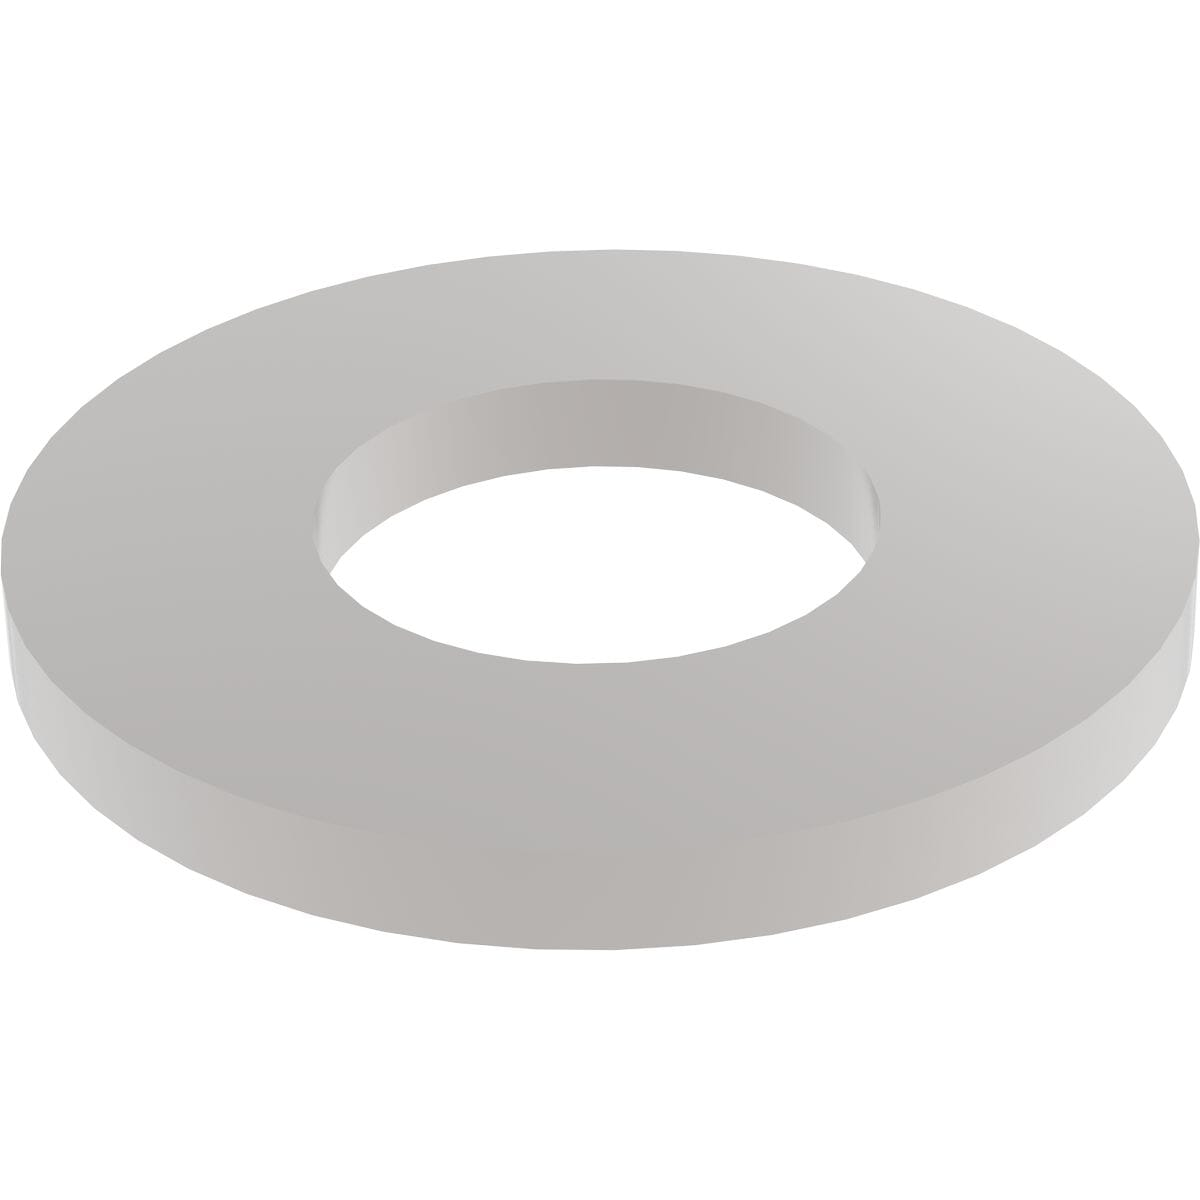 M5 Form A Flat Washers (DIN 125) - Stainless Steel (A2)